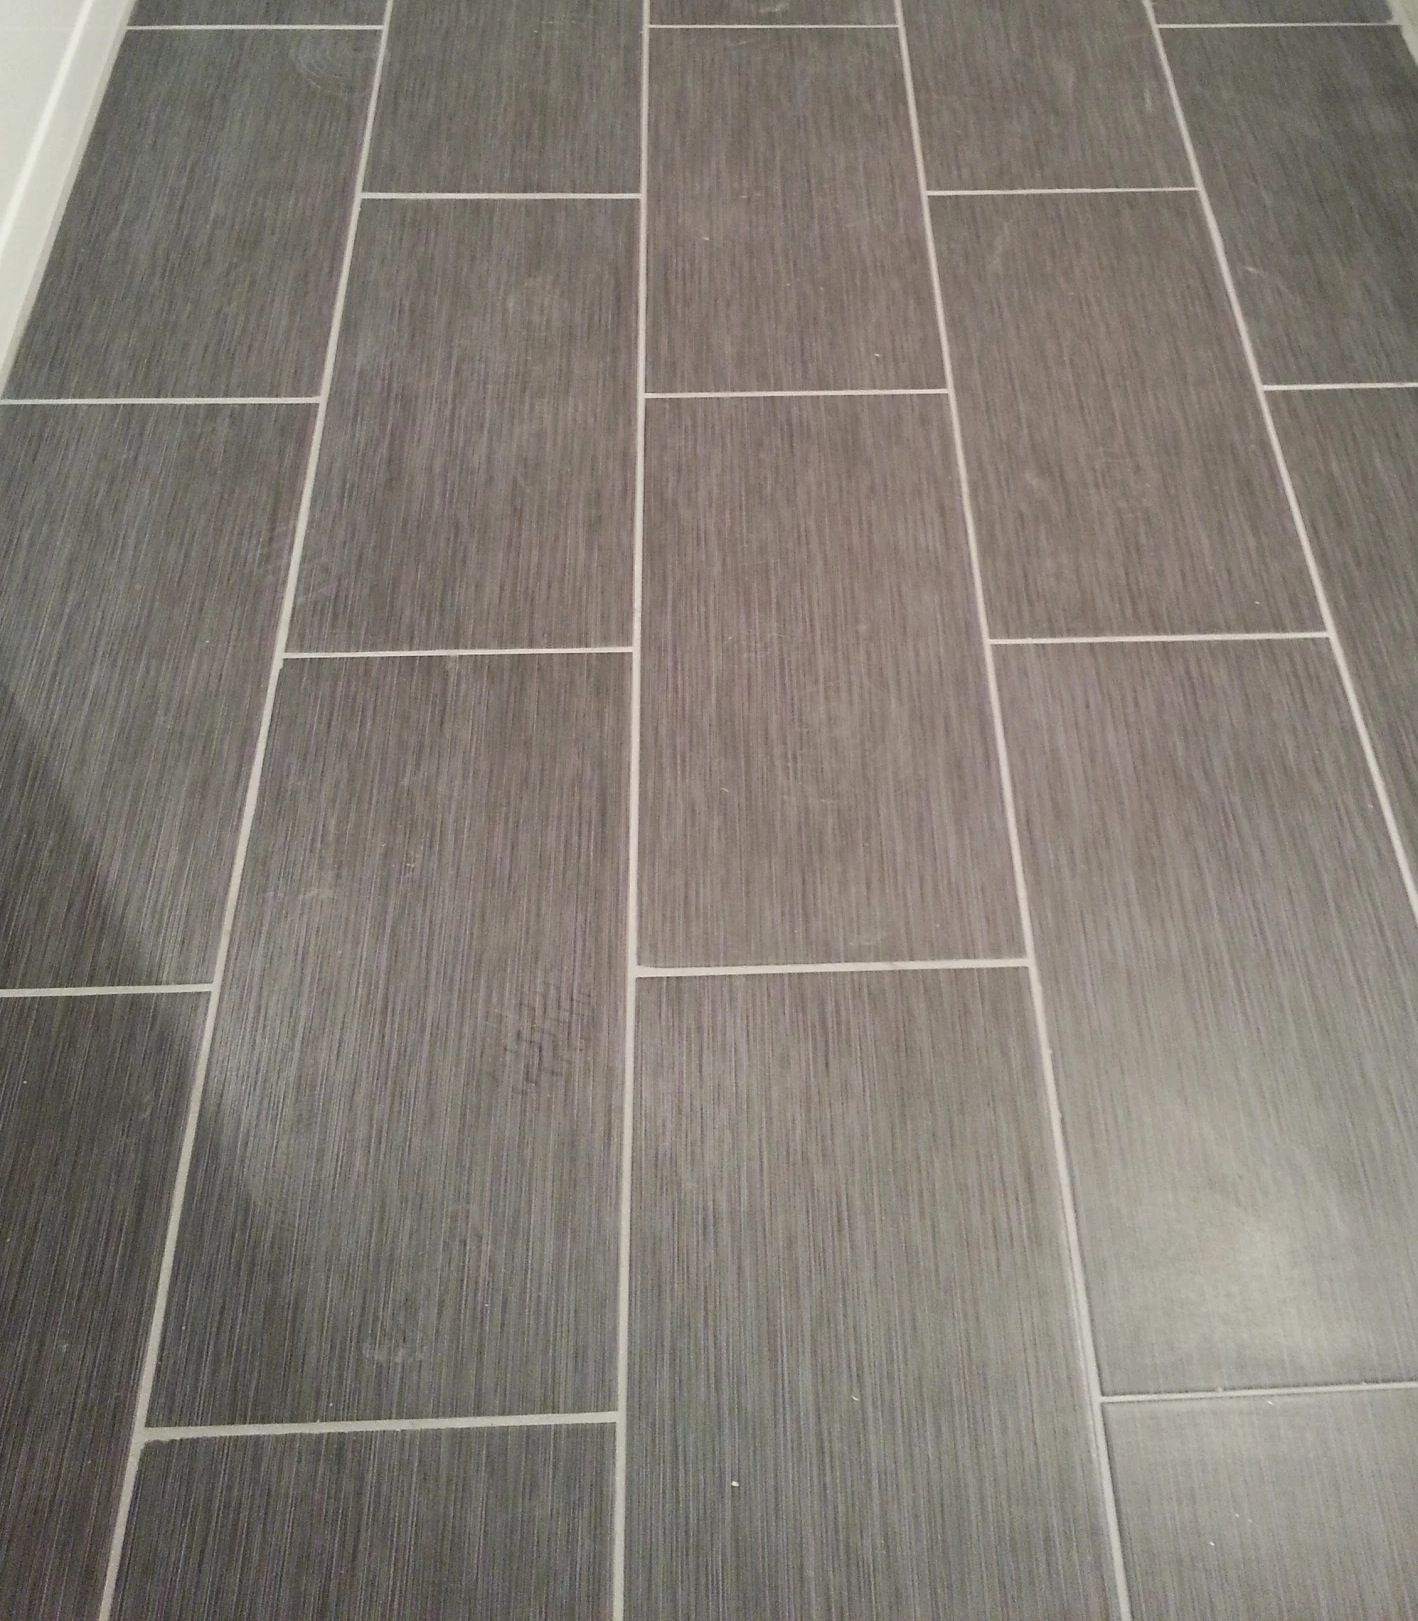 Home Depot Metro Gris 12x24 Tile In My Bathroom Home Depot